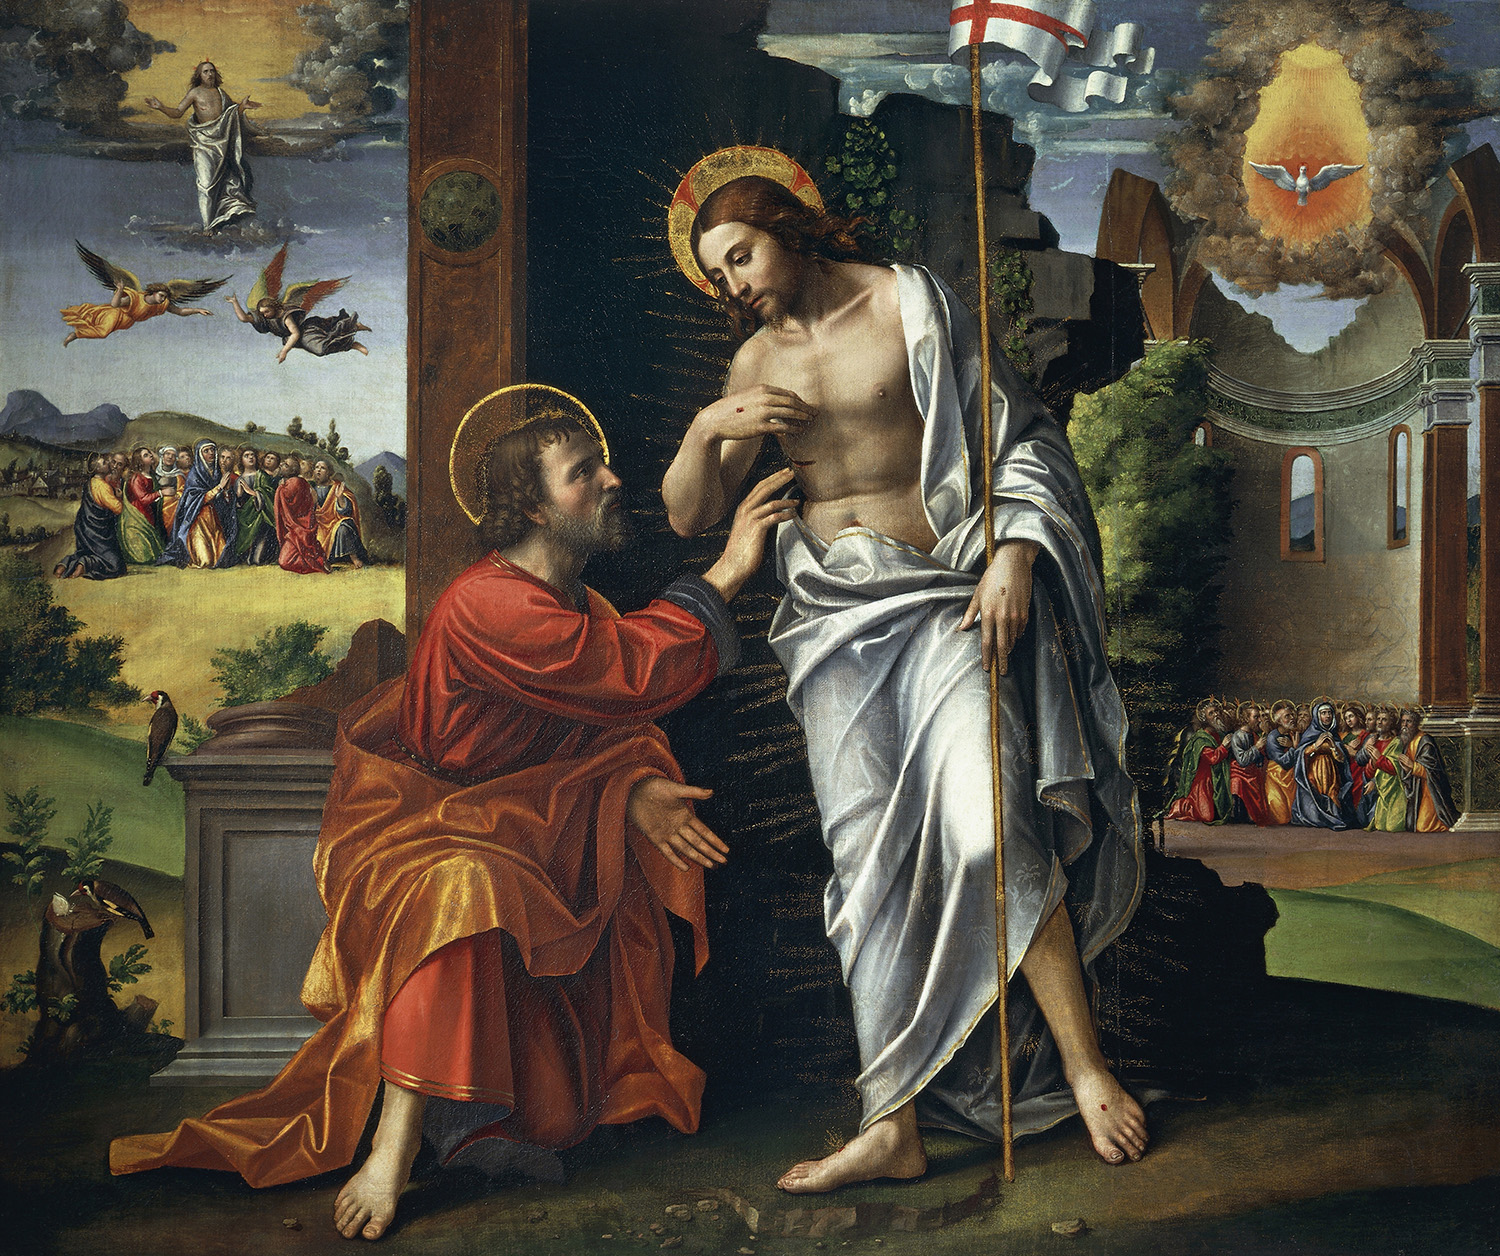 Christ and Doubting Thomas, painted by Paolo Cavazzola (1486-1522). (Credit: DeAgostini/Getty Images)